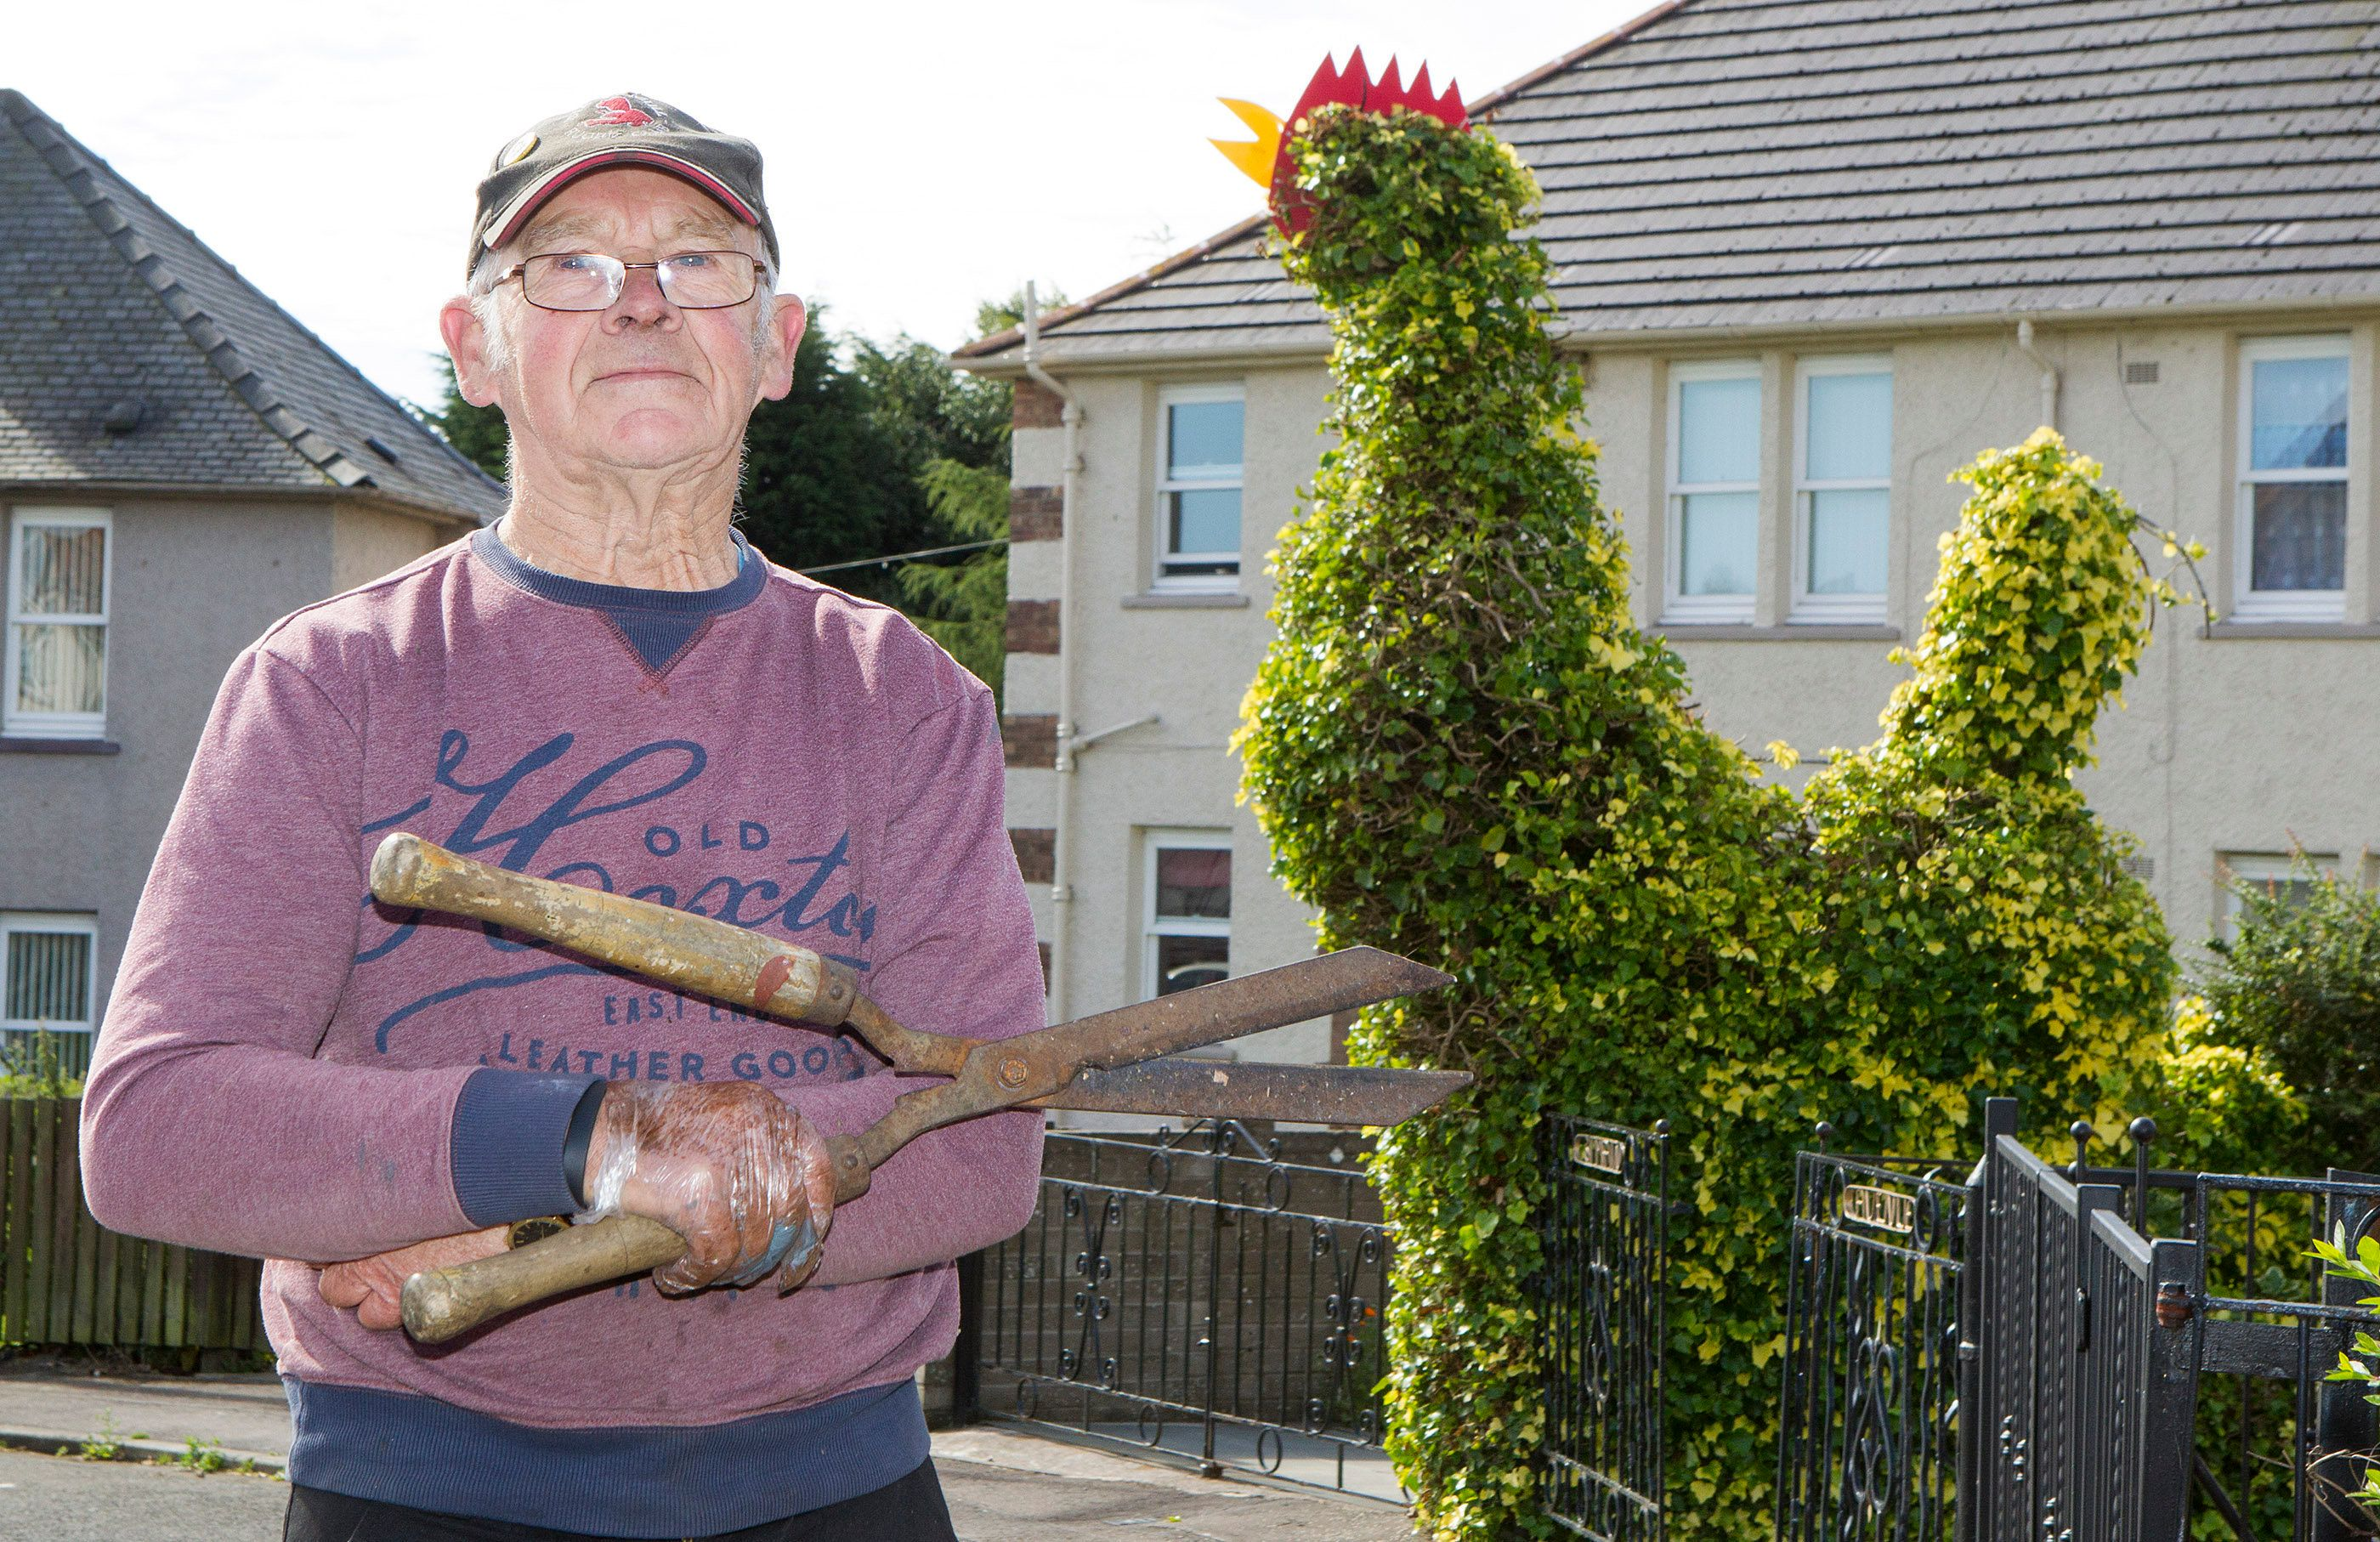 Pensioner's Massive Cock Has Become A Local Tourist